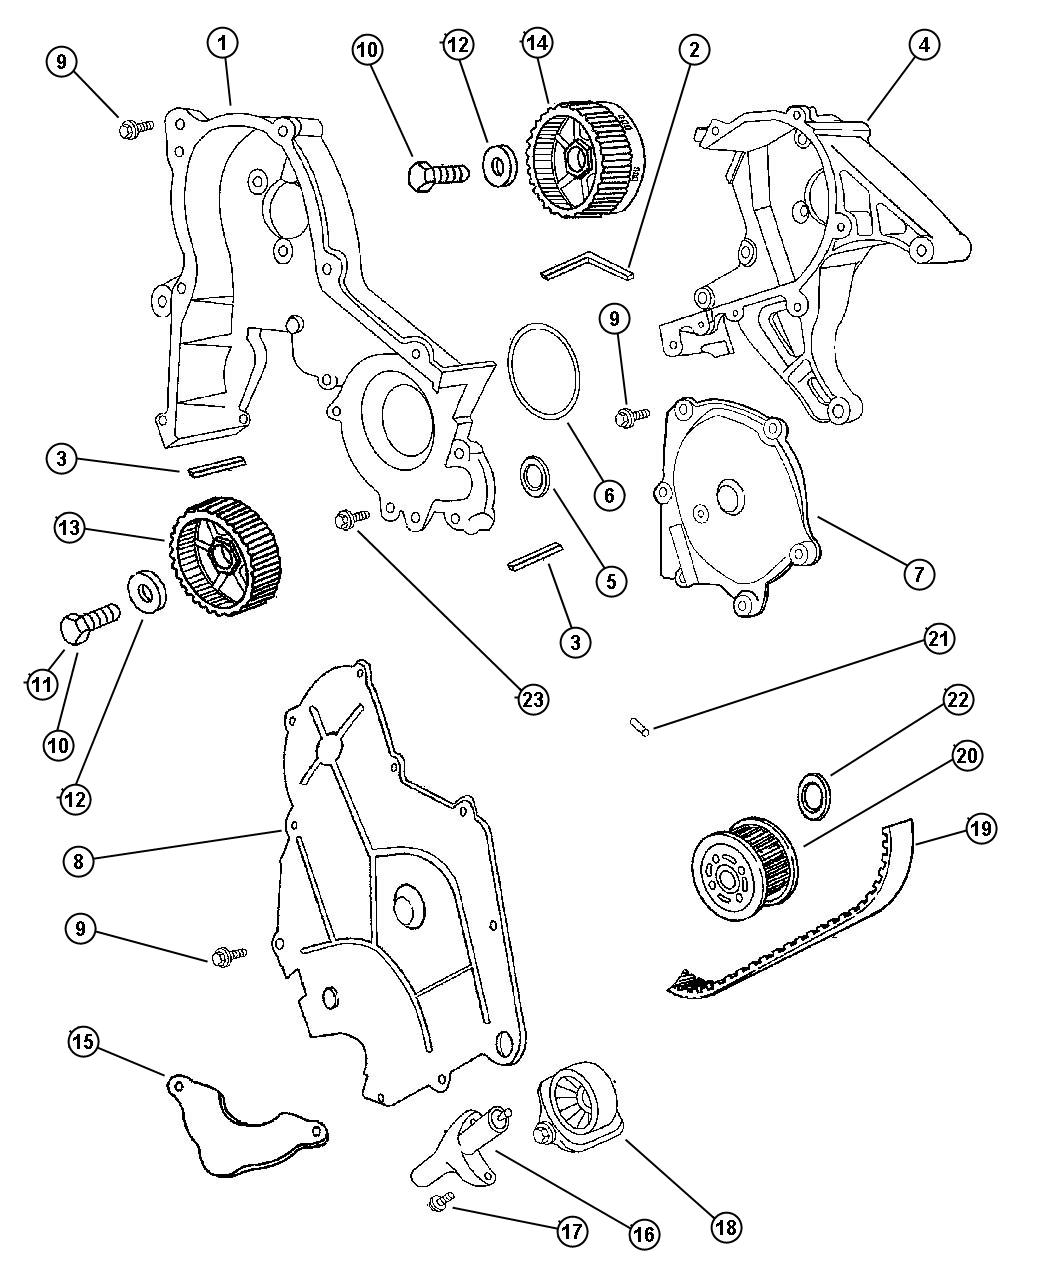 Chrysler Lhs Timing Chain Alignment Show Marks